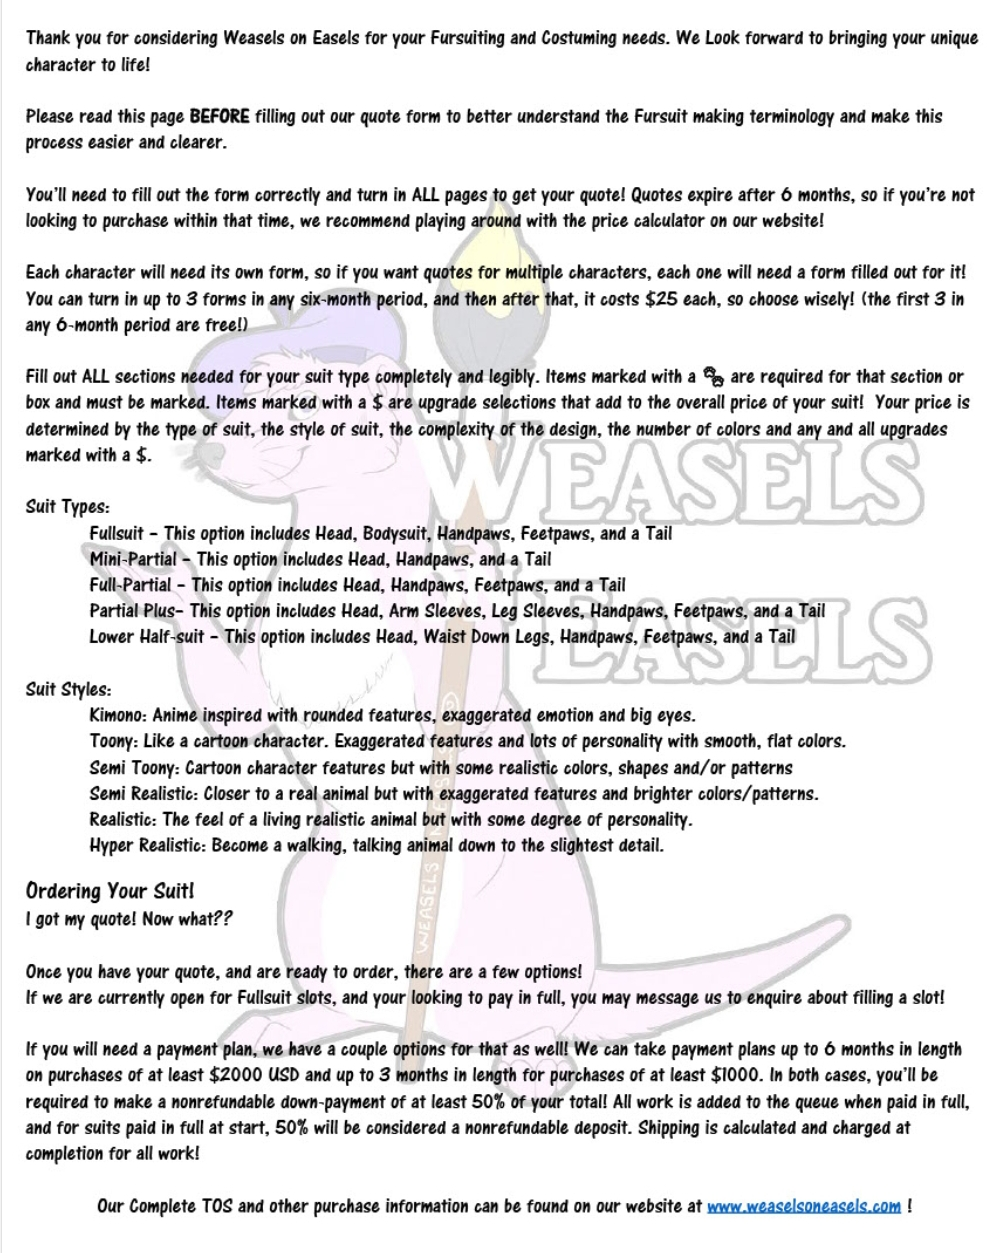 WoE 2019 Quote Form V1.3 Pg 1